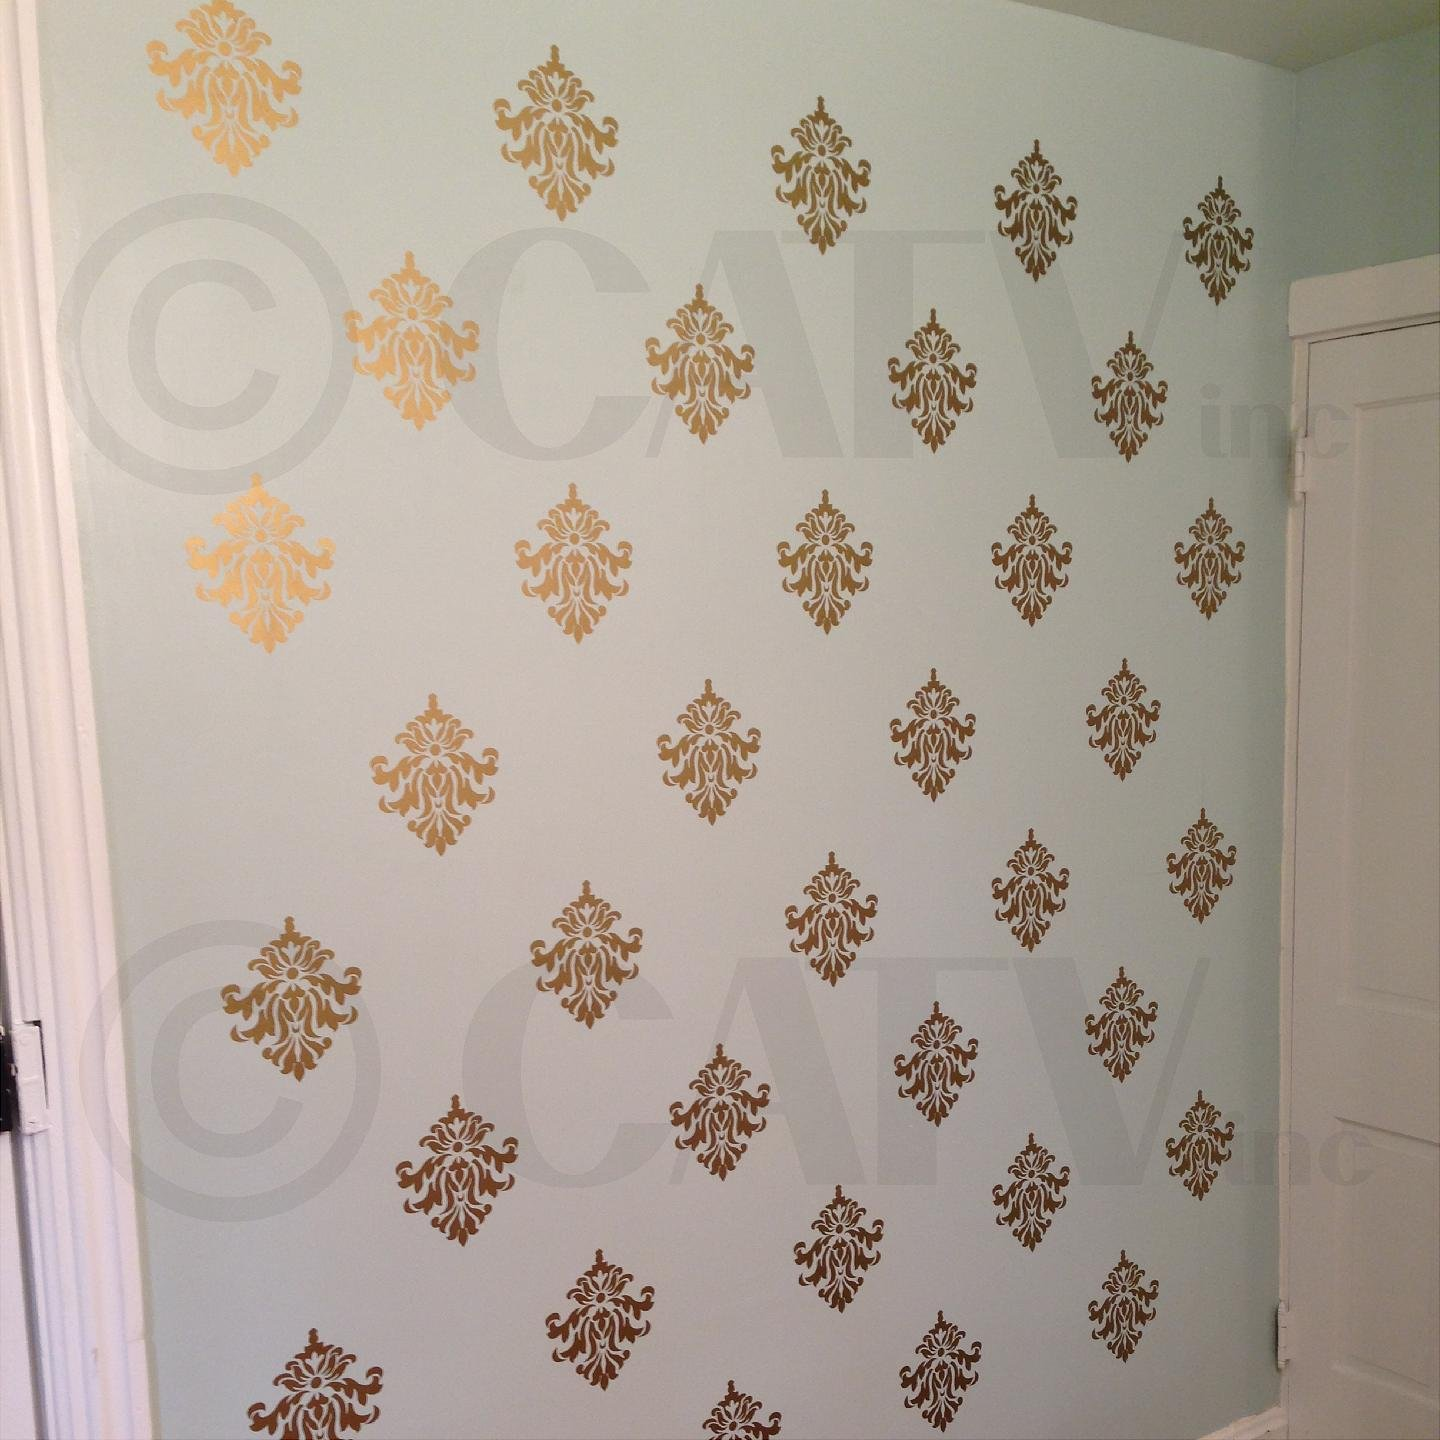 Amazon.com: Damask Set Of 18 Vinyl Wall Decal Self Adhesive Wall Pattern  Stickers (Gold): Home U0026 Kitchen